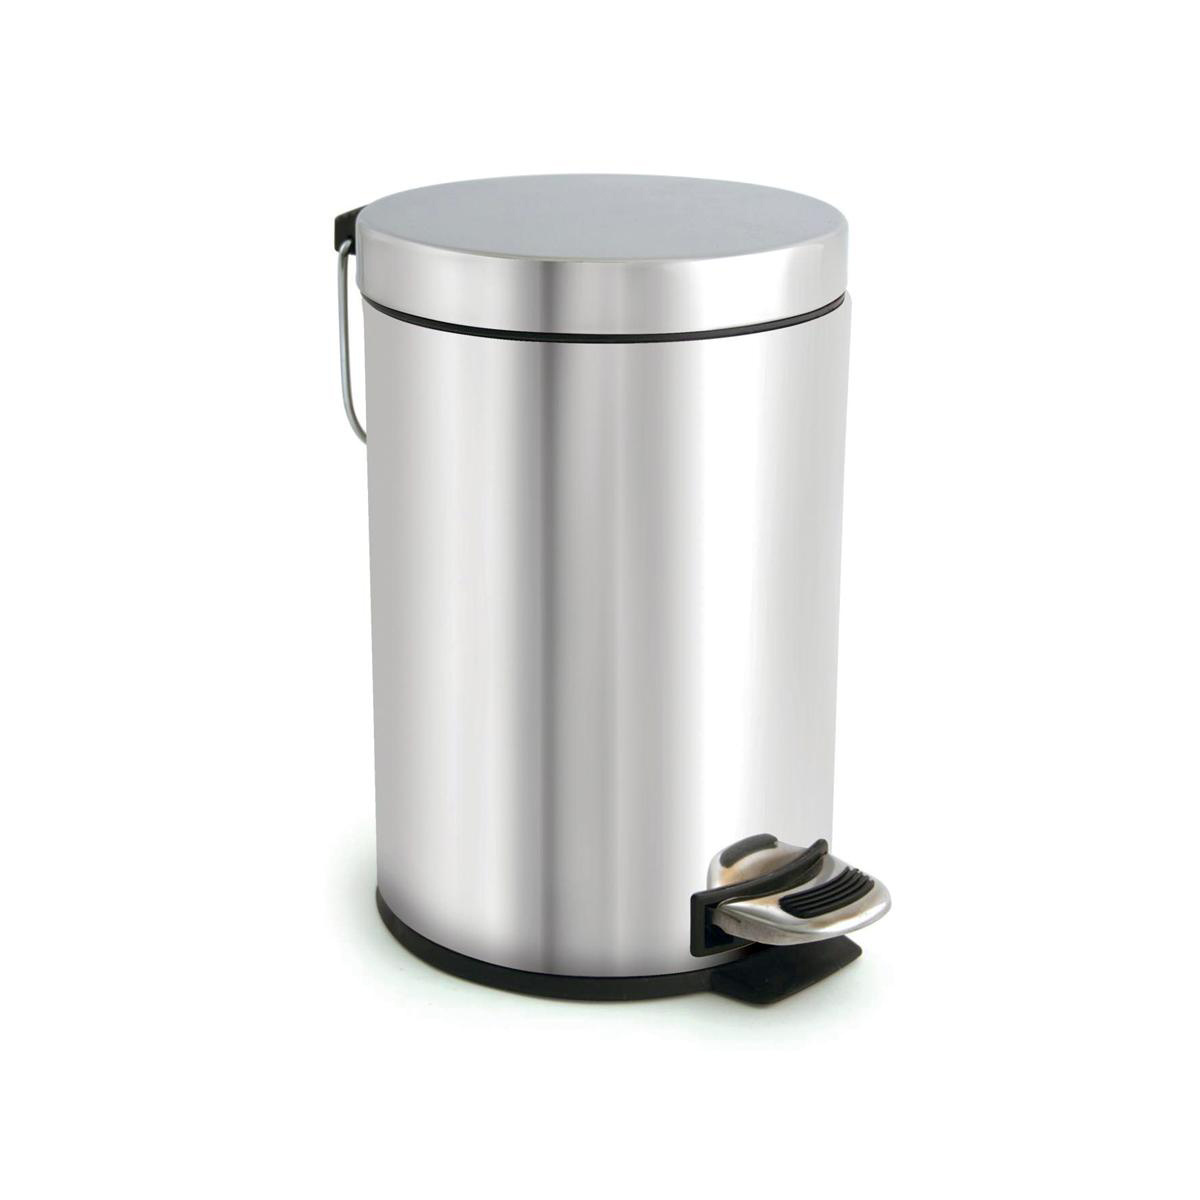 Metallic bins Pedal Bin with Removable Inner Bucket 3 Litre Stainless Steel